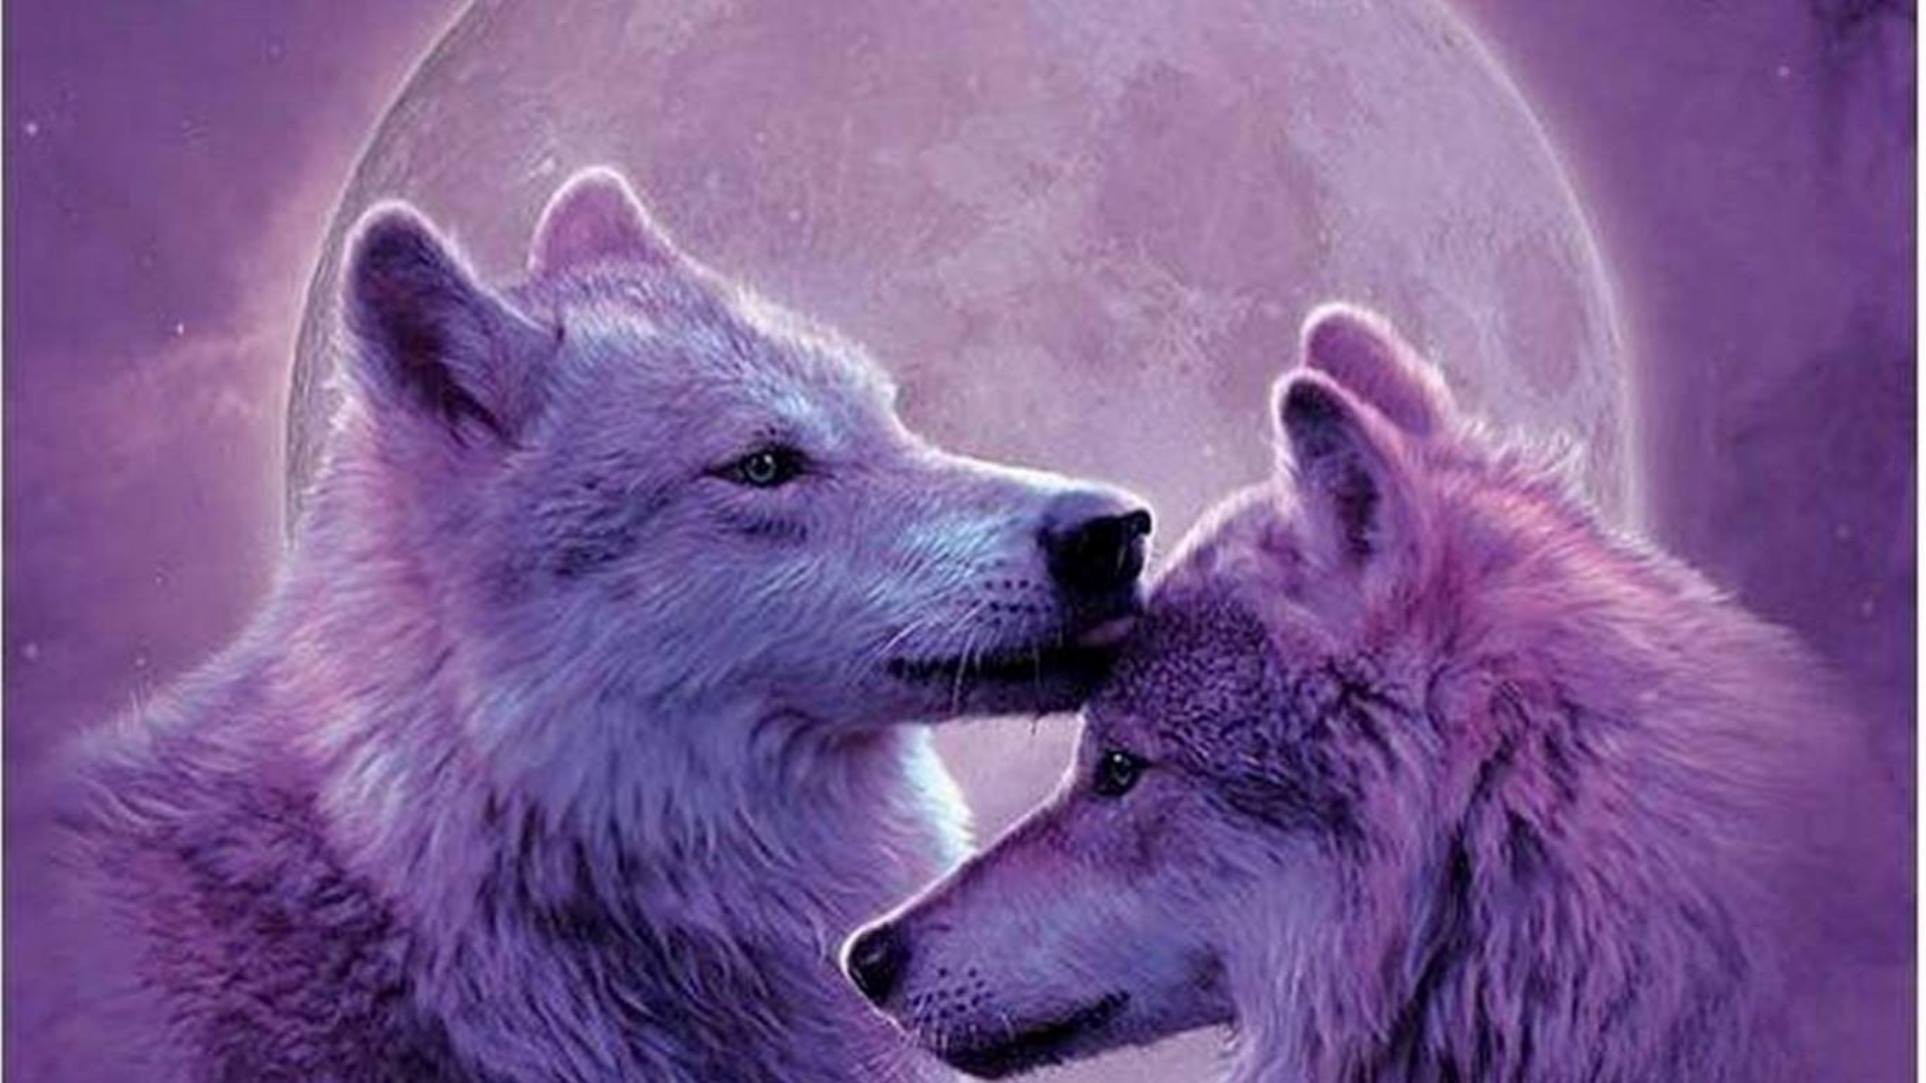 other moonwolves wolves animals painting moon nature wolf 53 pictures